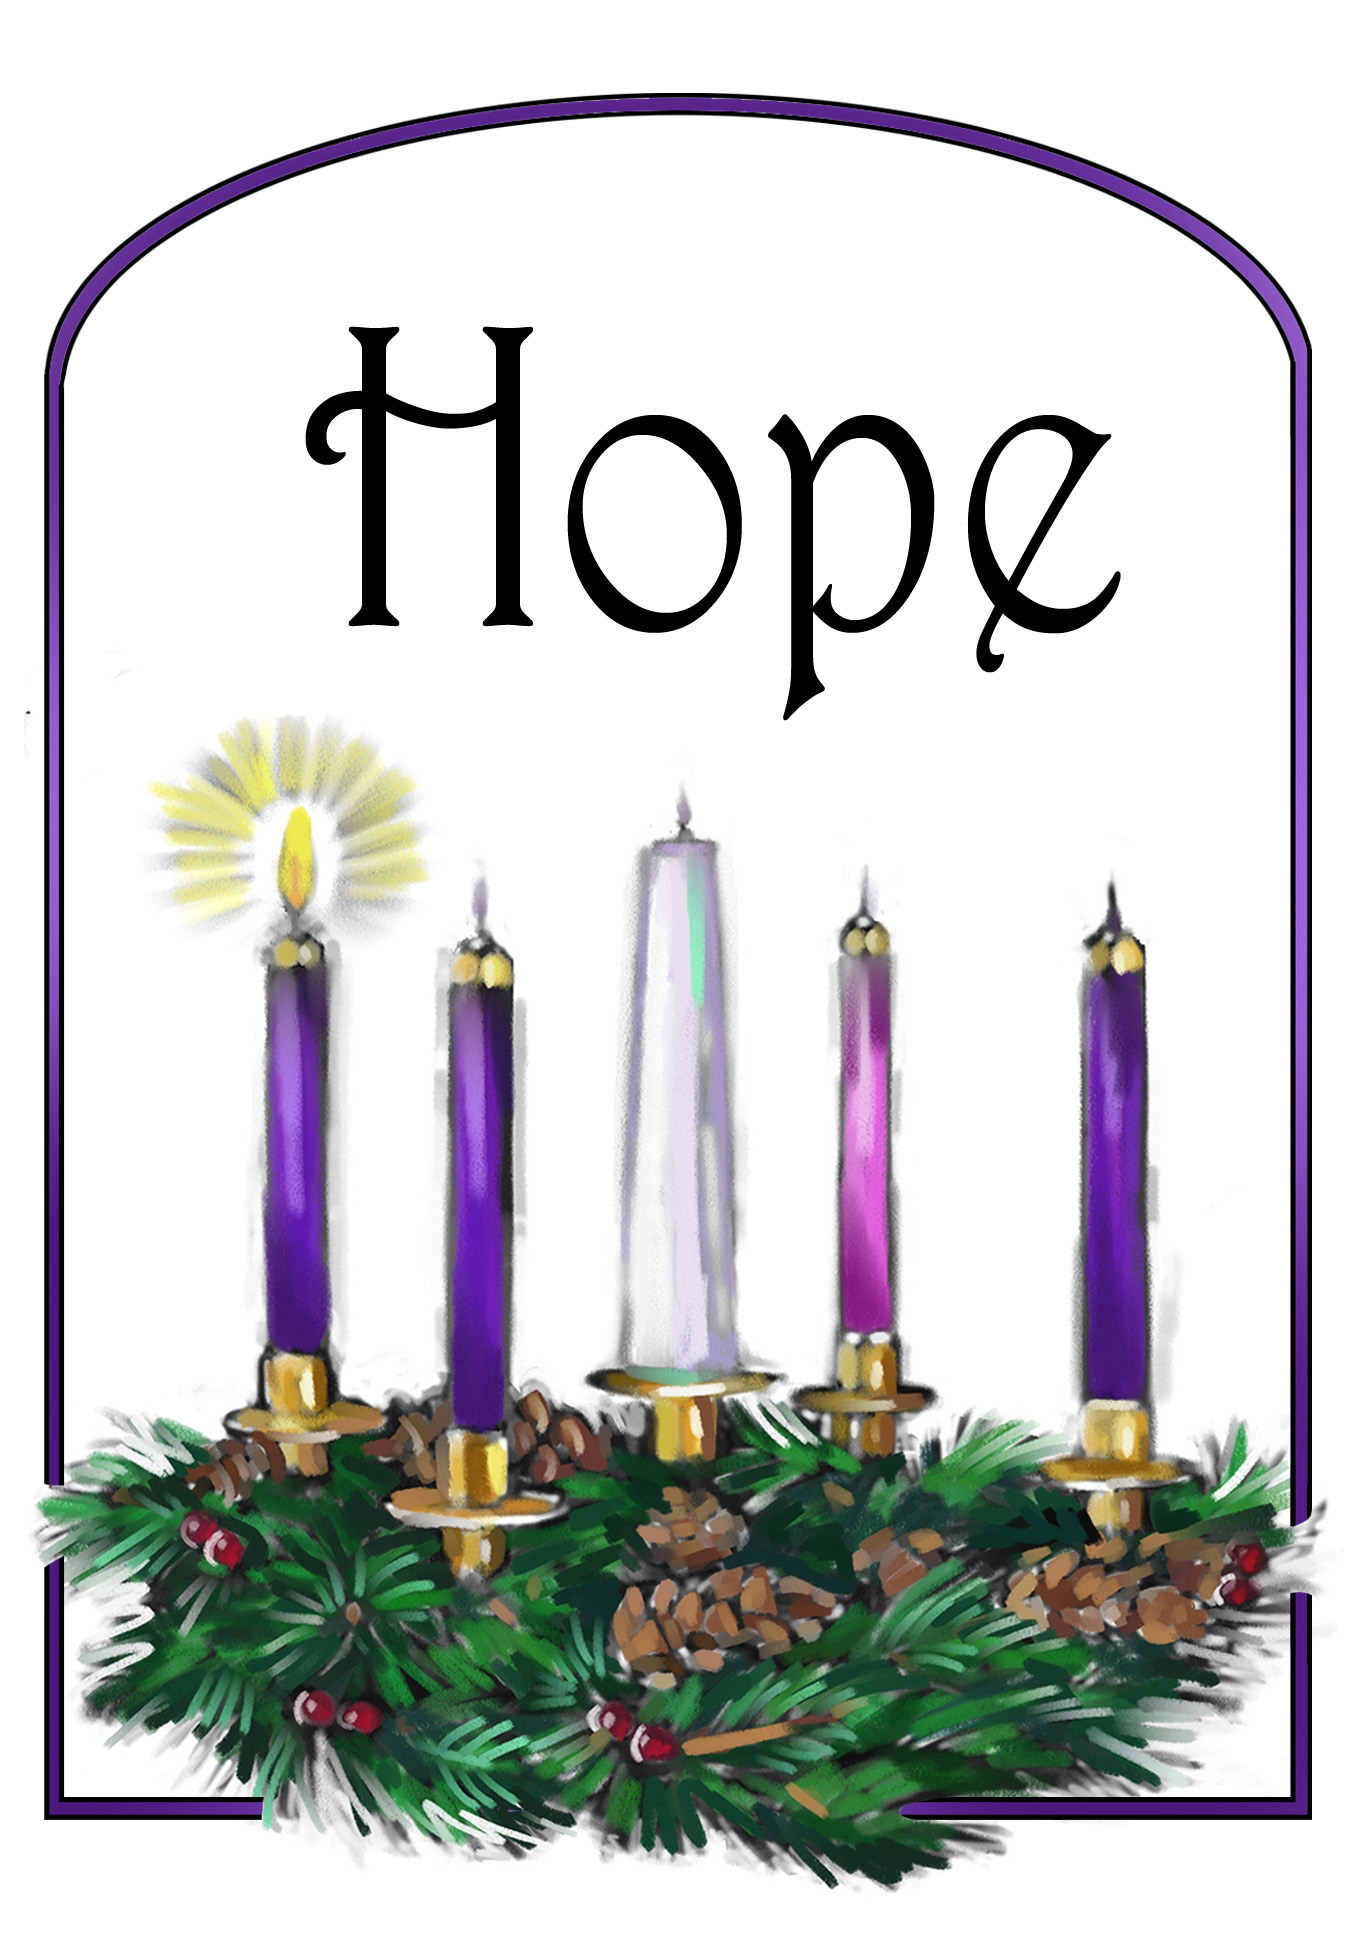 First sunday of advent 2017 clipart download Free Advent 1 Cliparts, Download Free Clip Art, Free Clip Art on ... download